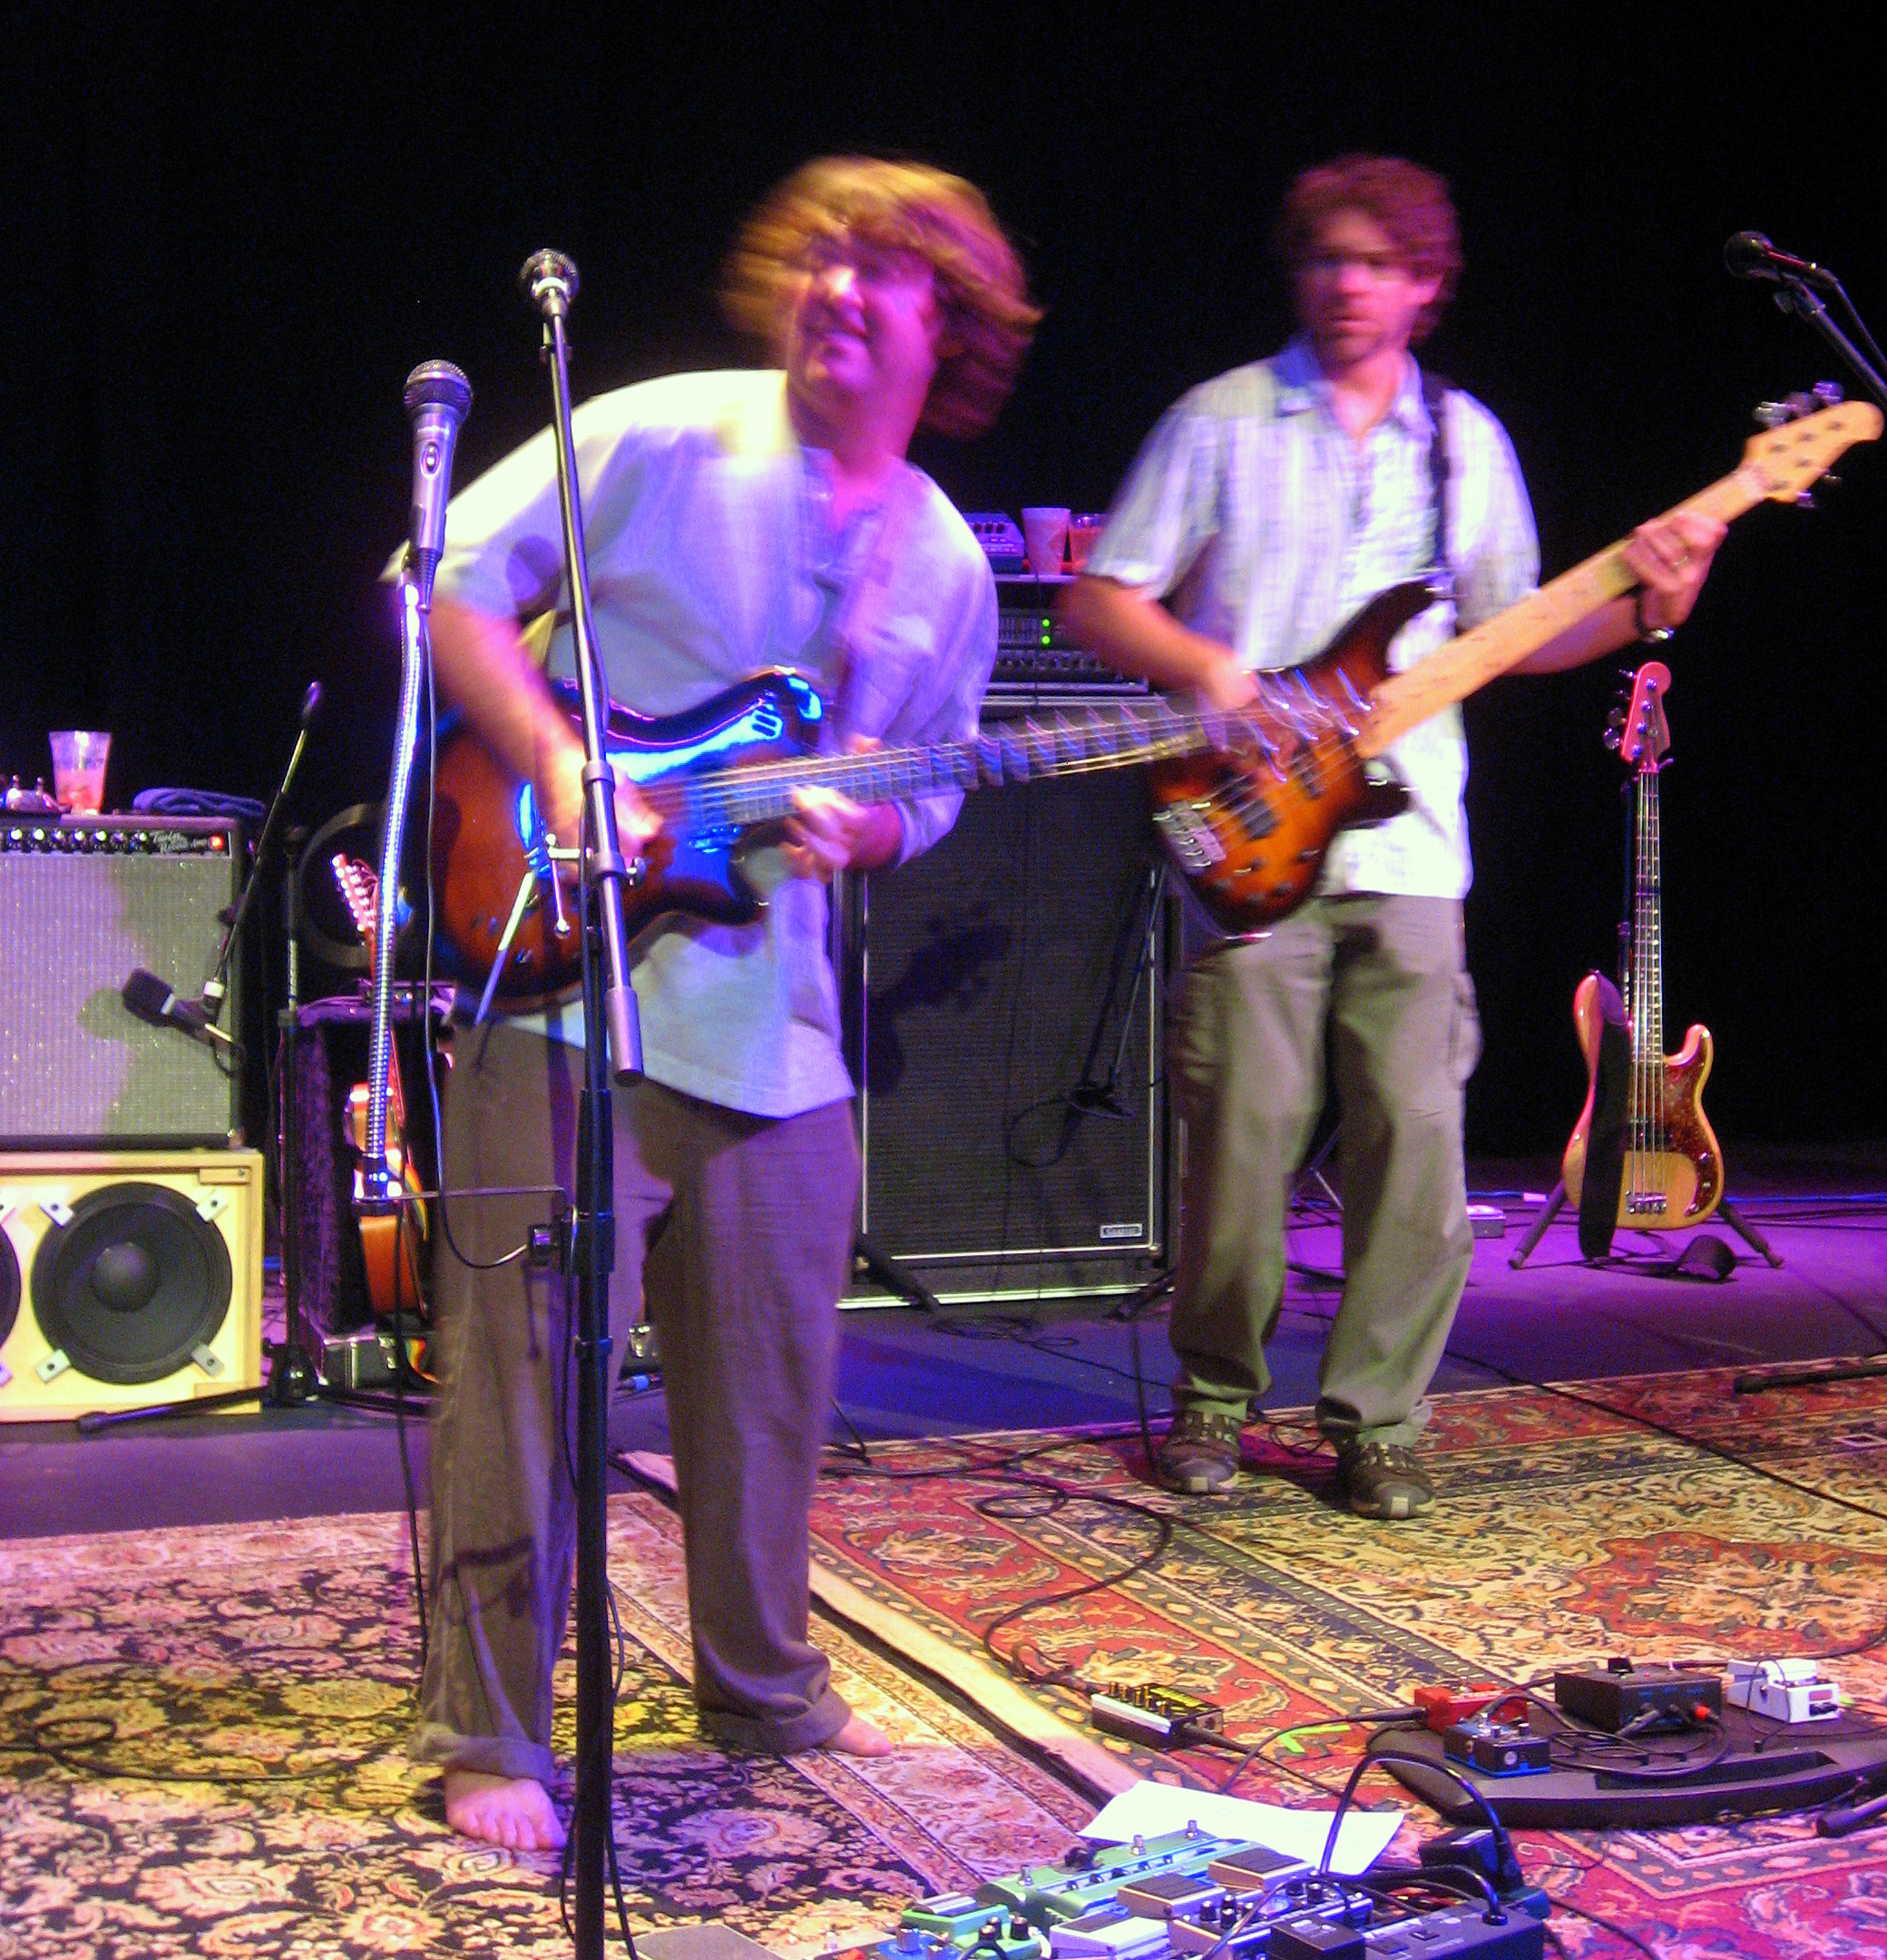 Keller Williams jams out at a past performance in Pennsylvania.